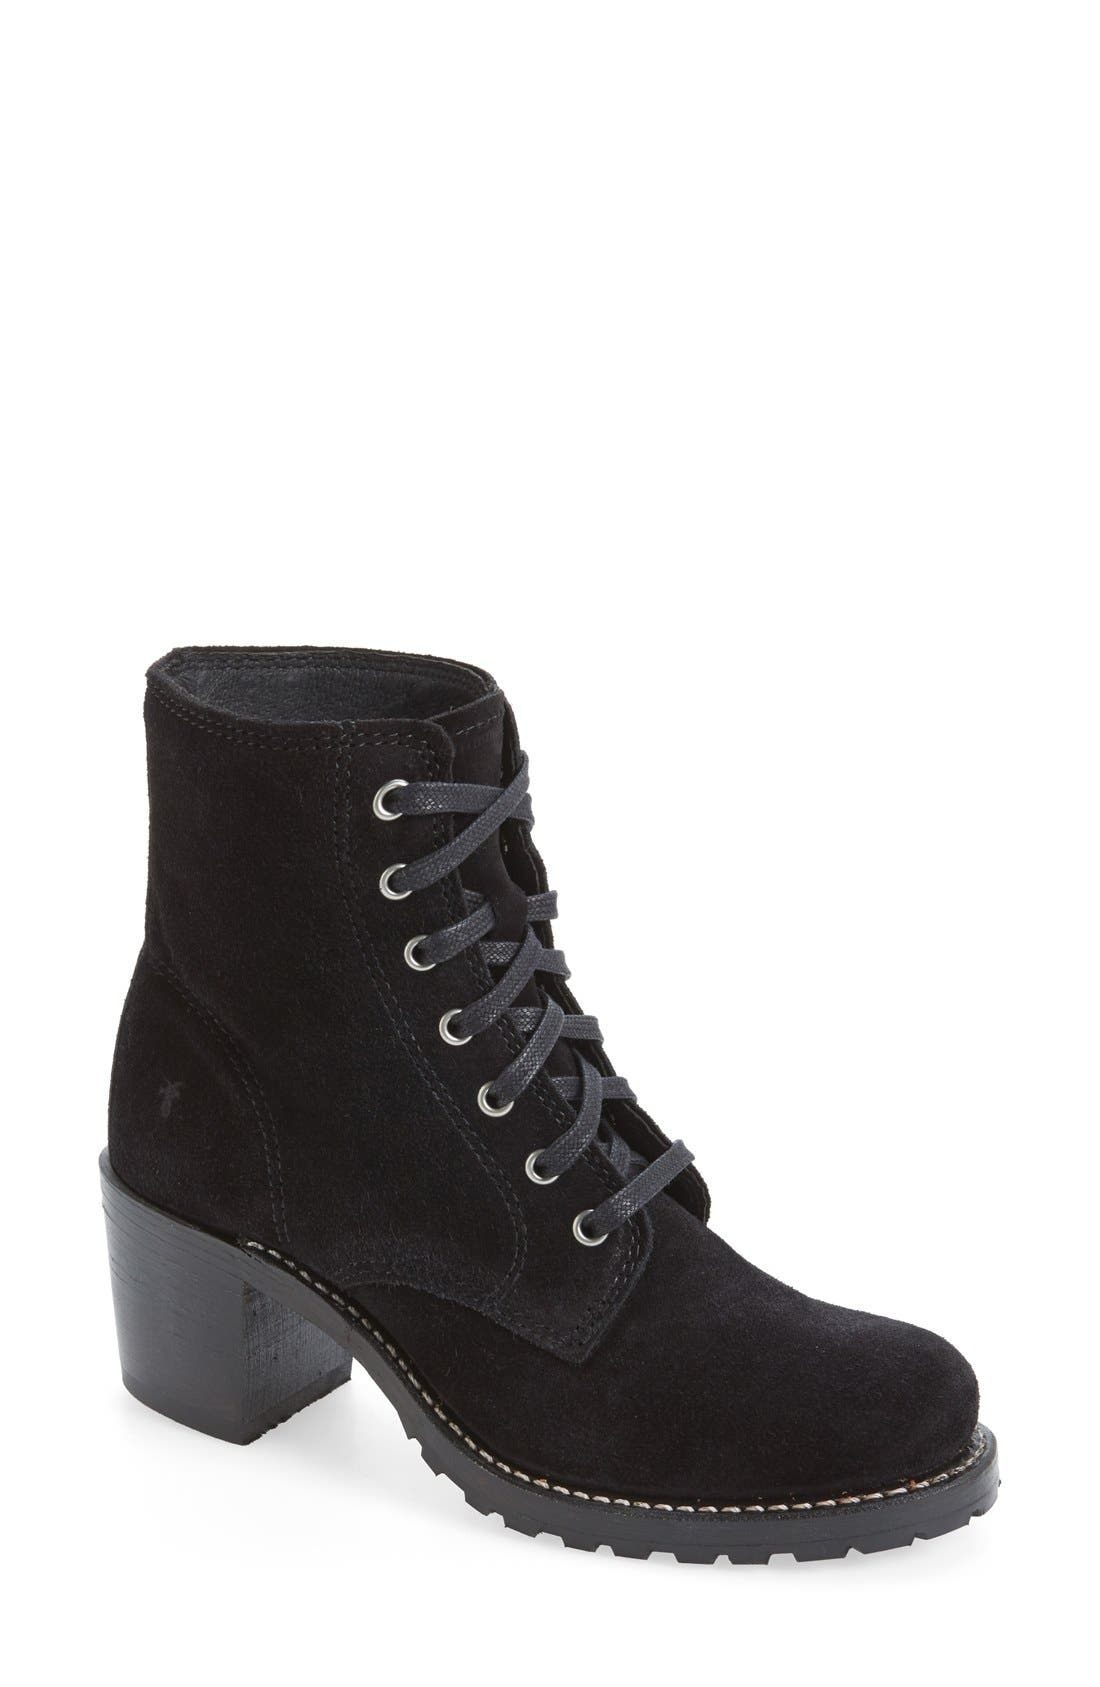 Main Image - Frye 'Sabrina' Lace-Up Bootie